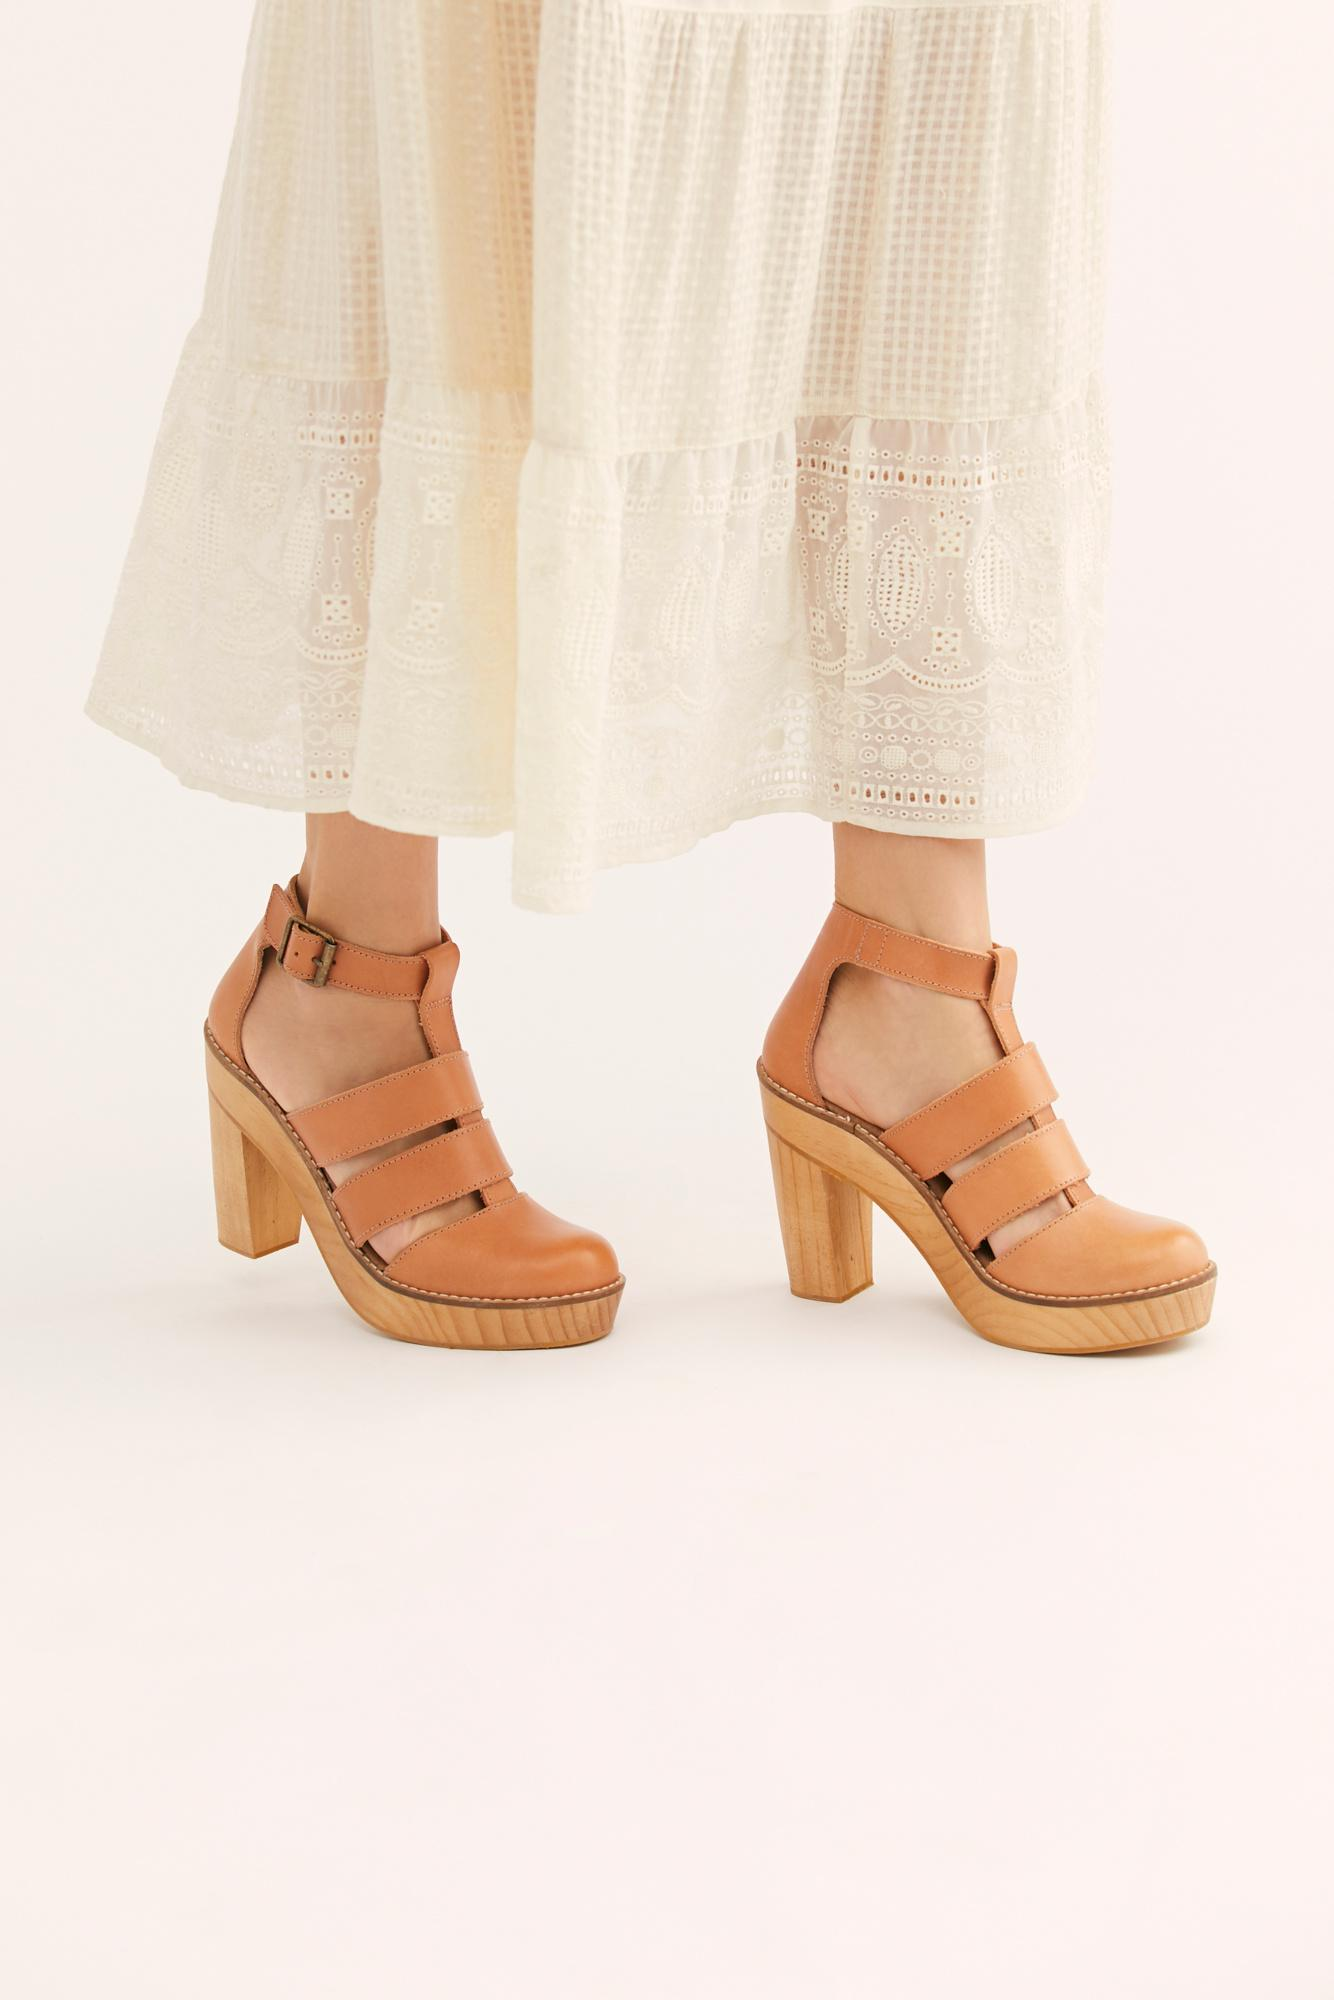 6f5b0e9e98c Free People Mix It Up Platform By Fp Collection in Natural - Lyst